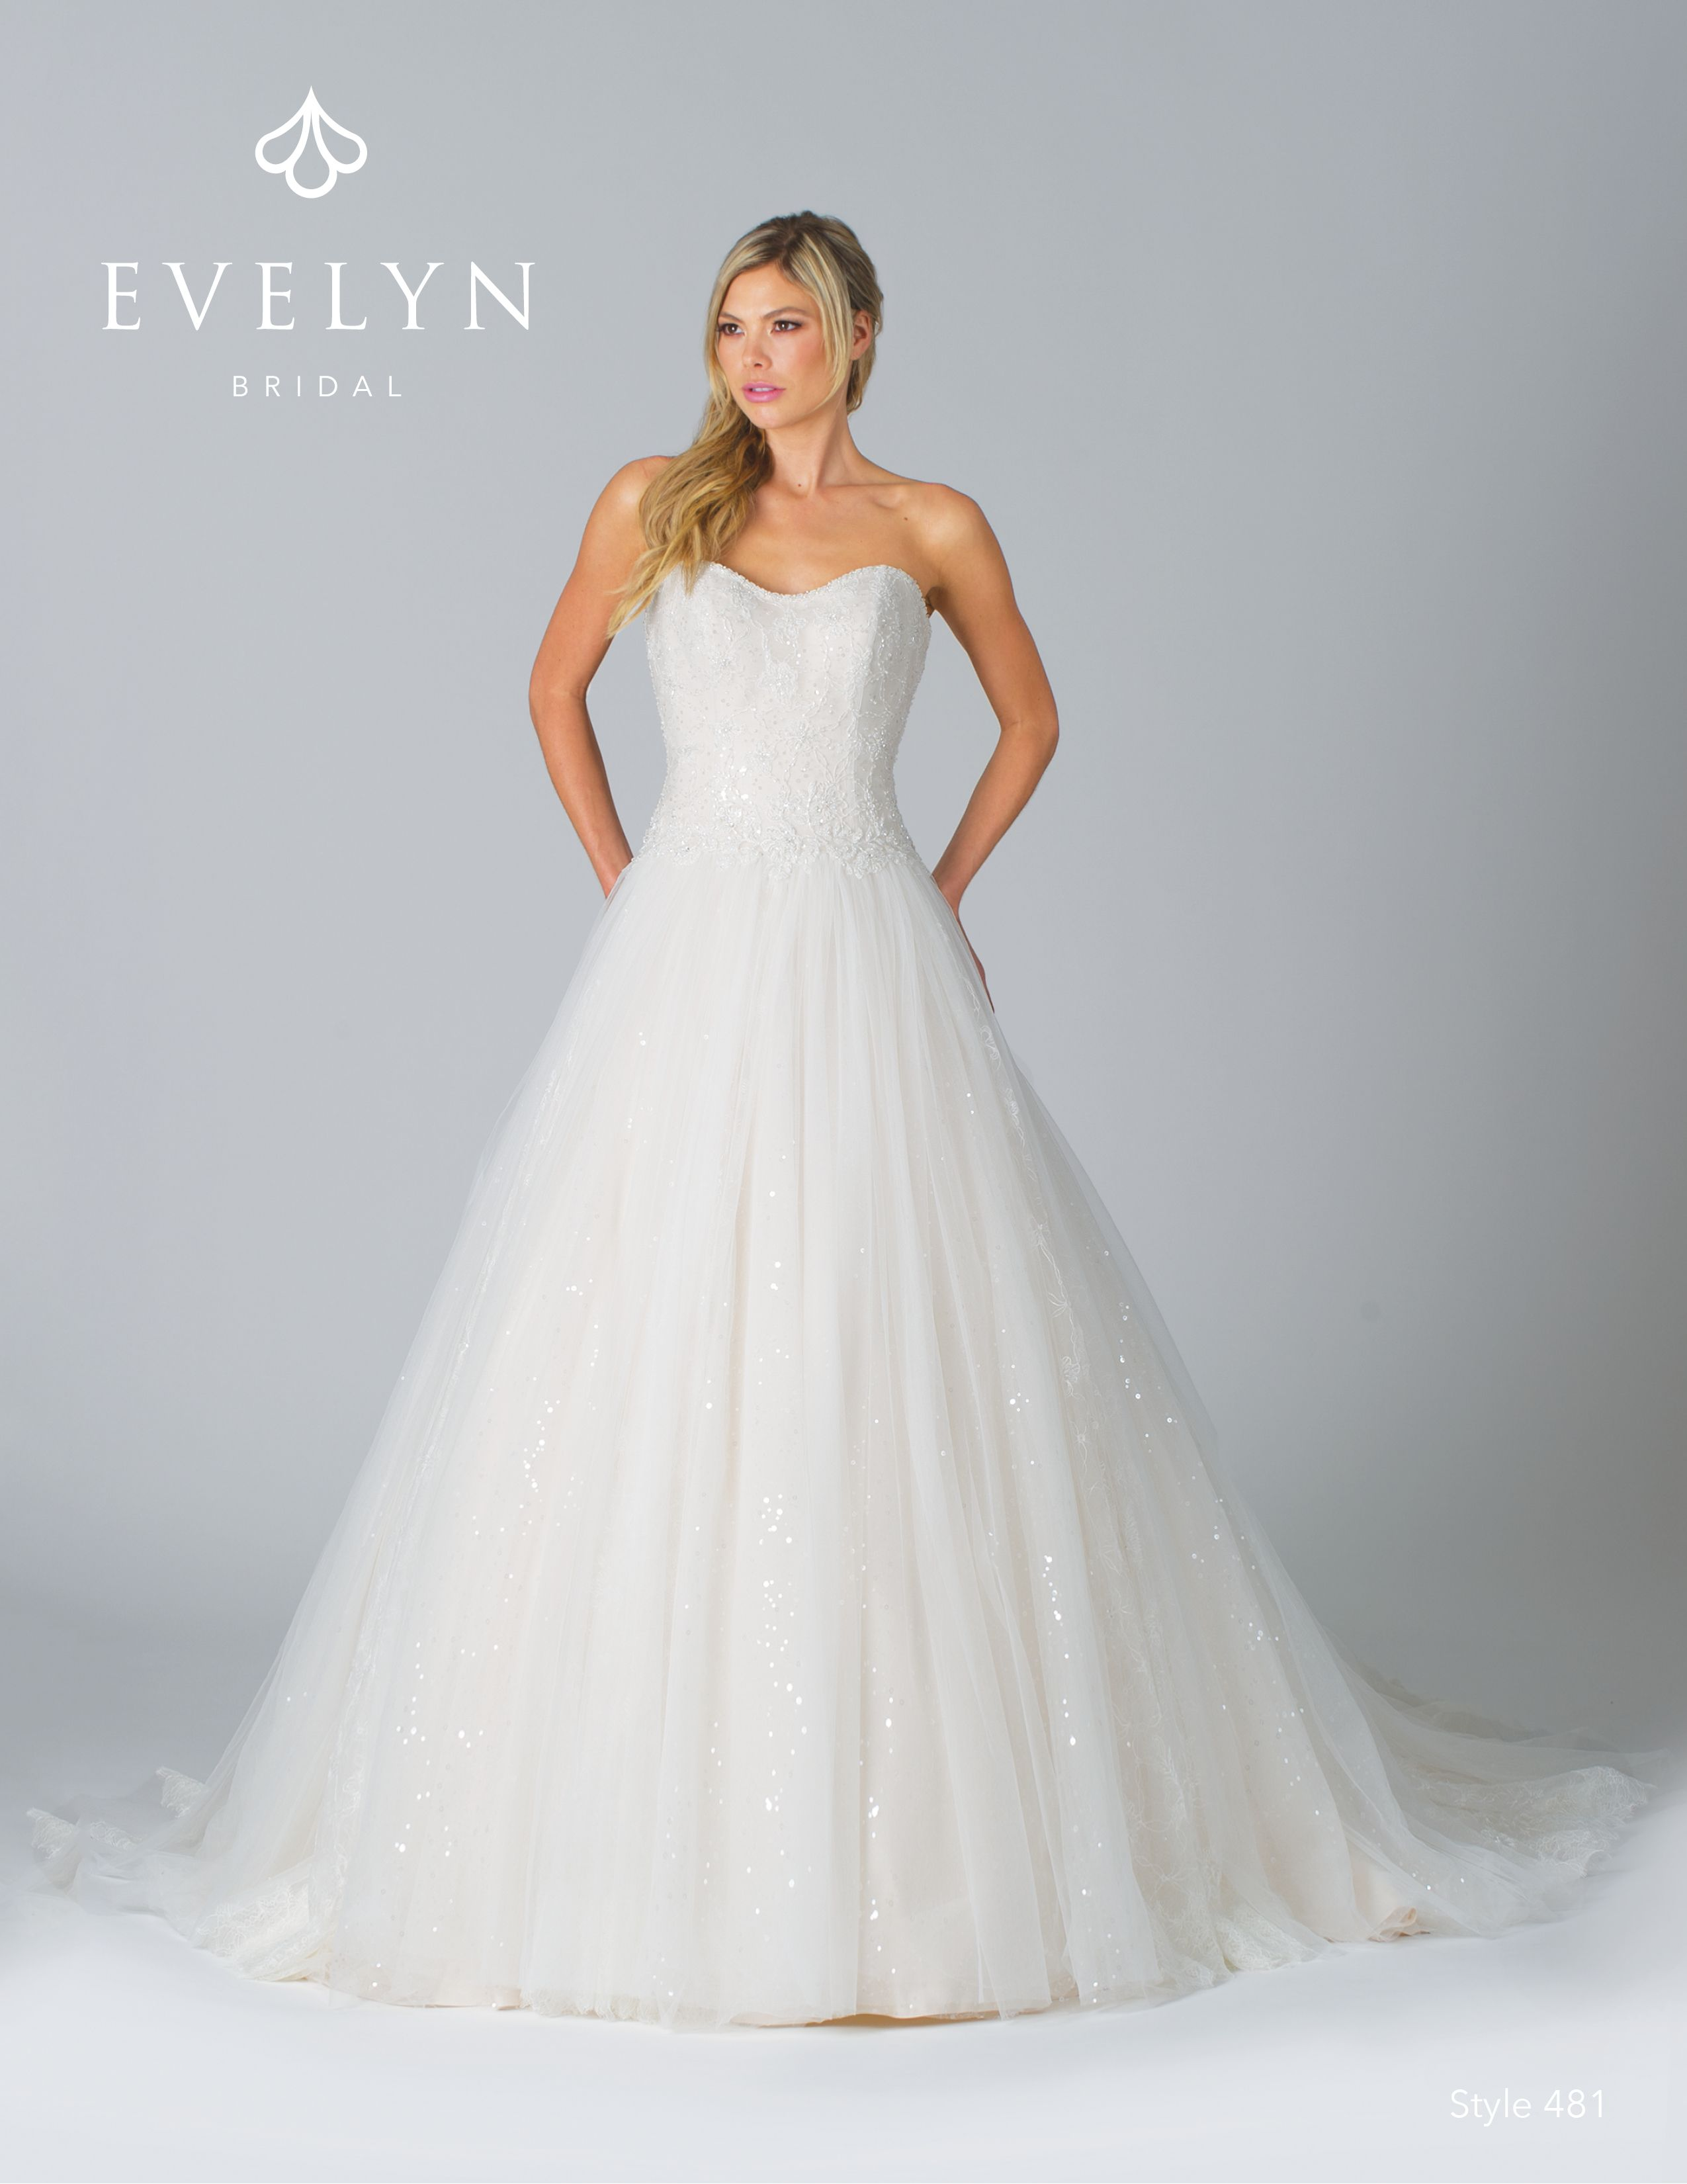 Style 481 Tinley - Elegant tulle ball gown with hand-beaded pearl appliqués  that… | Tulle ball gown, Evelyn bridal, Ball gowns